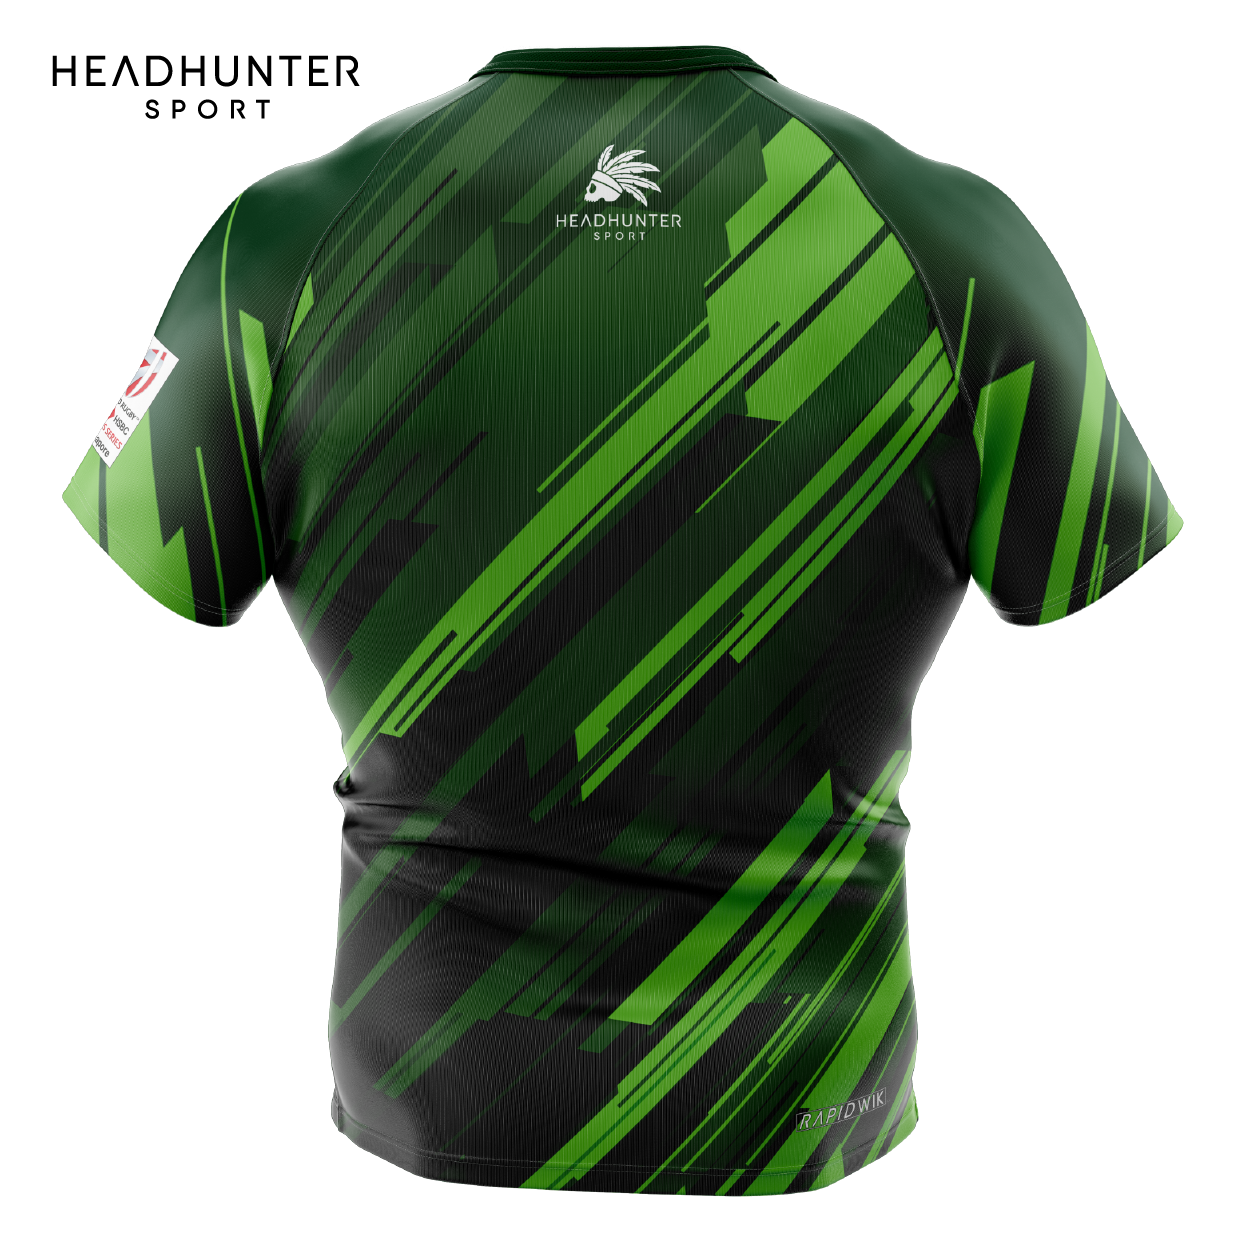 HSBC RUGBY 7S SERIES SINGAPORE 2019 MERCHANDISE SOUTH AFRICA JERSEY